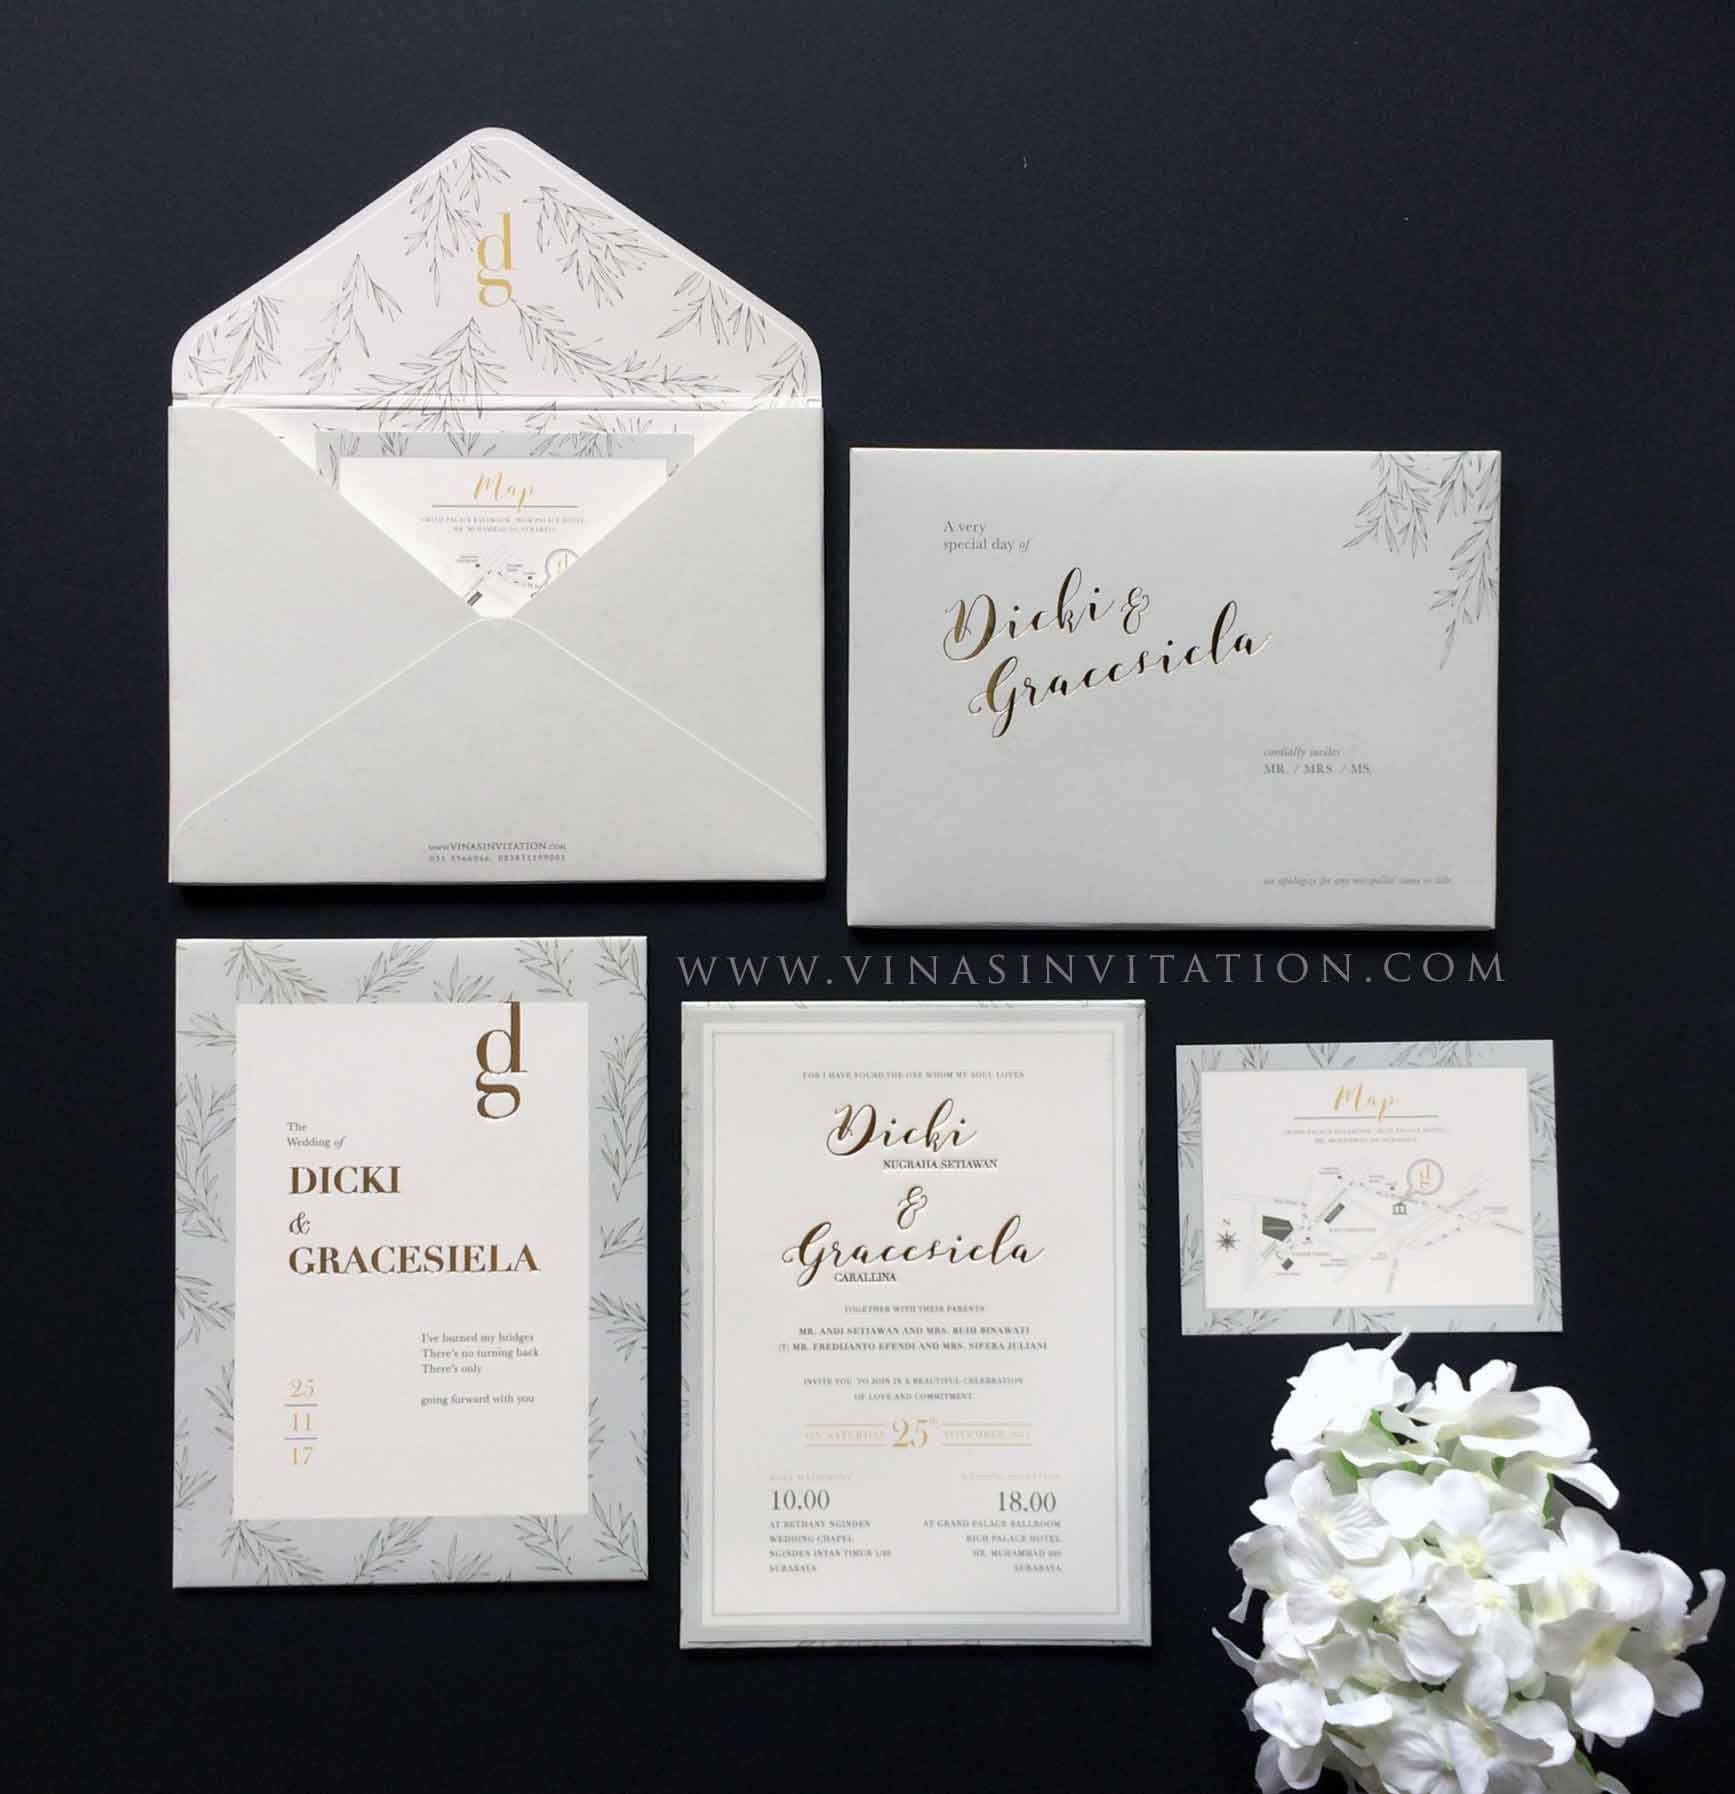 vinas invitation. wedding invitation semarang. wedding invitation ...